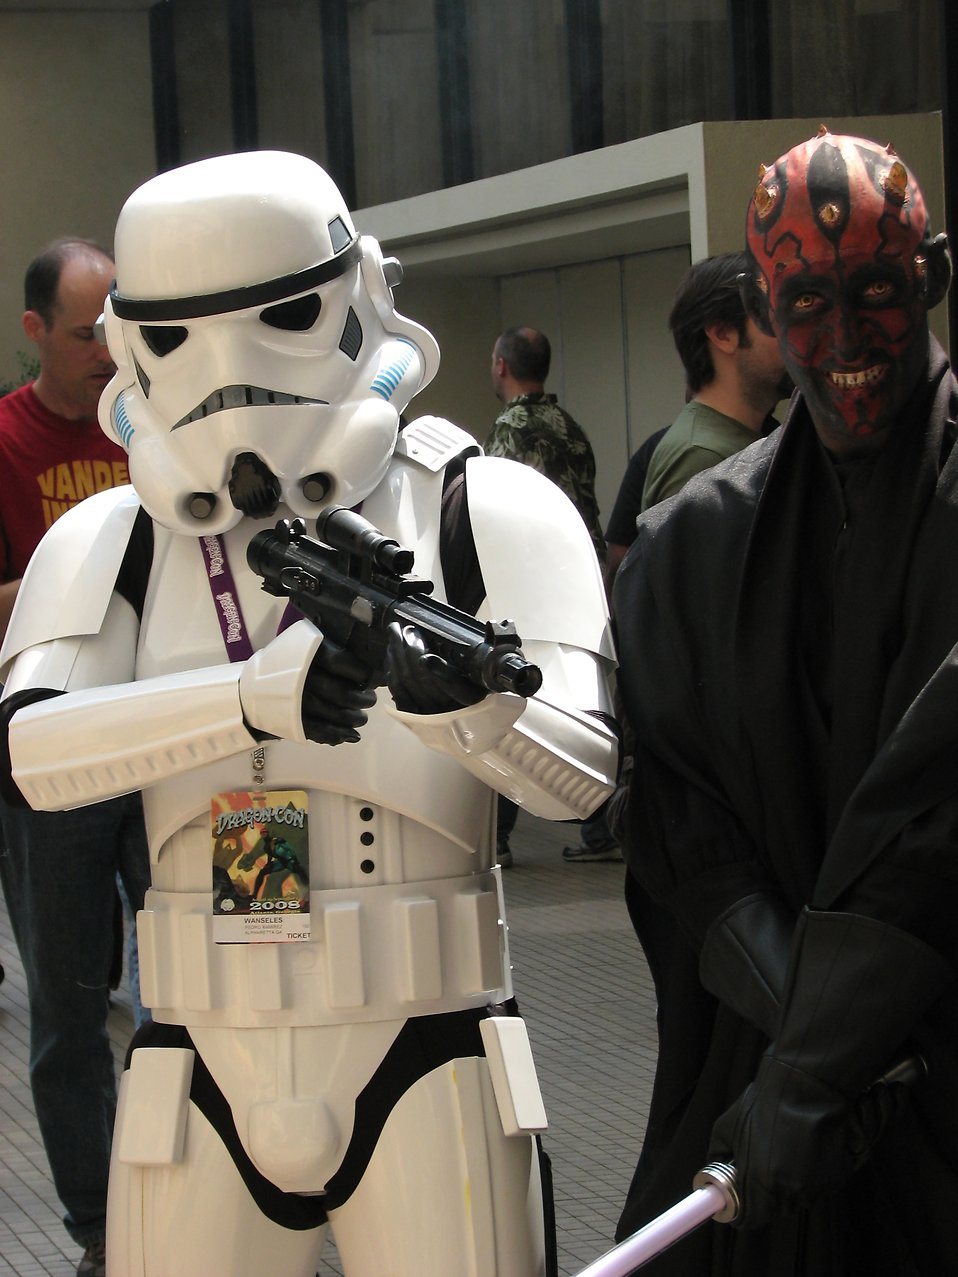 Stormtrooper and Darth Maul costume at Dragoncon 2008 : Free Stock Photo